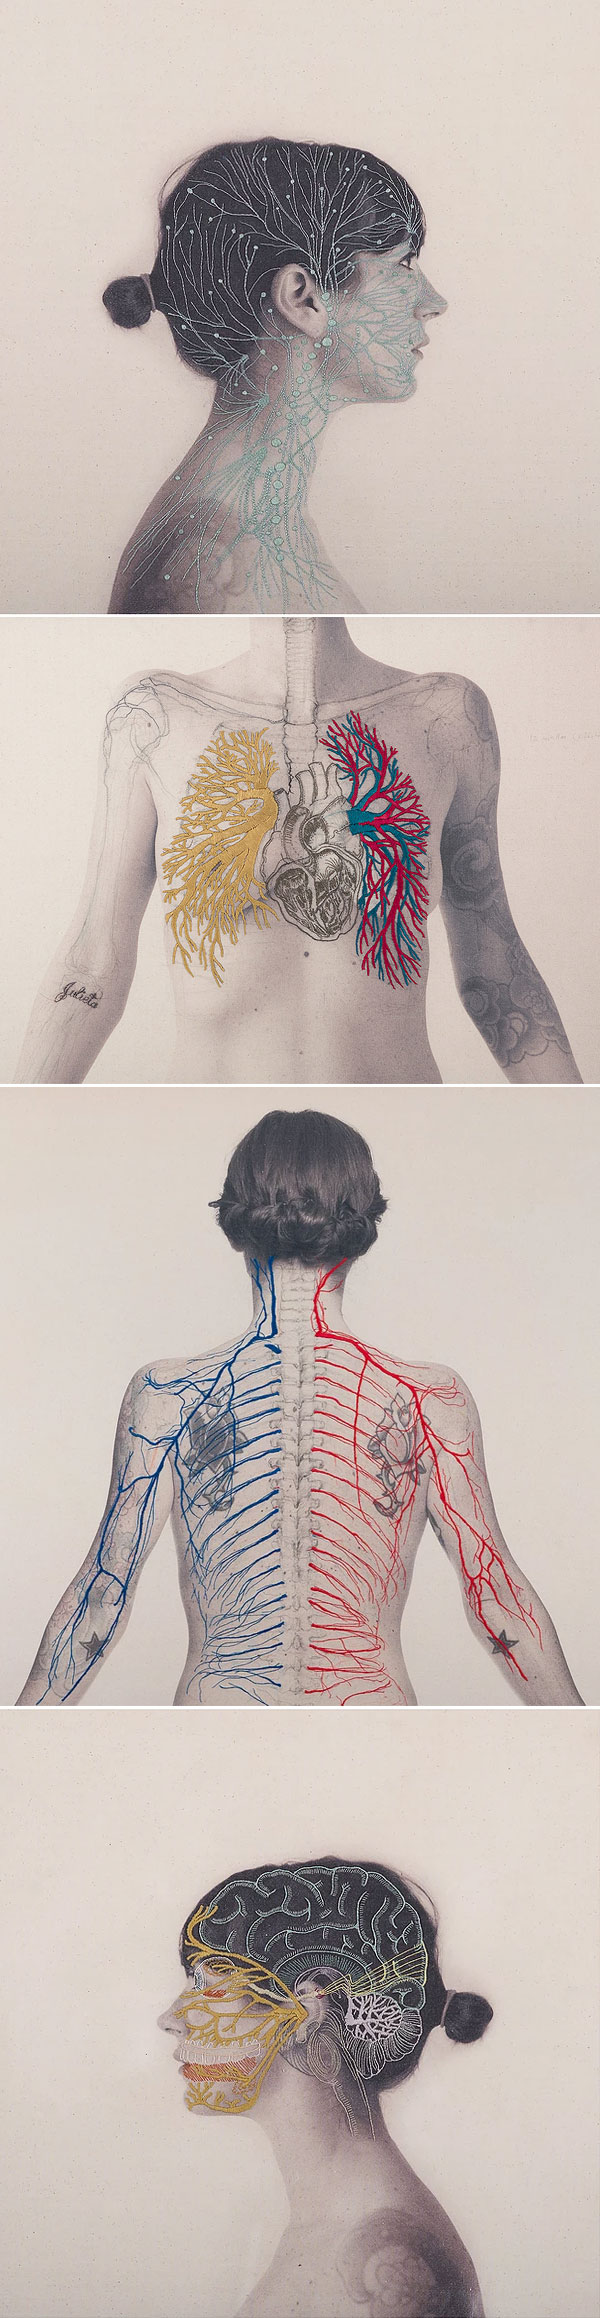 Constructal by Juana Gómez | Embroidery & Photography